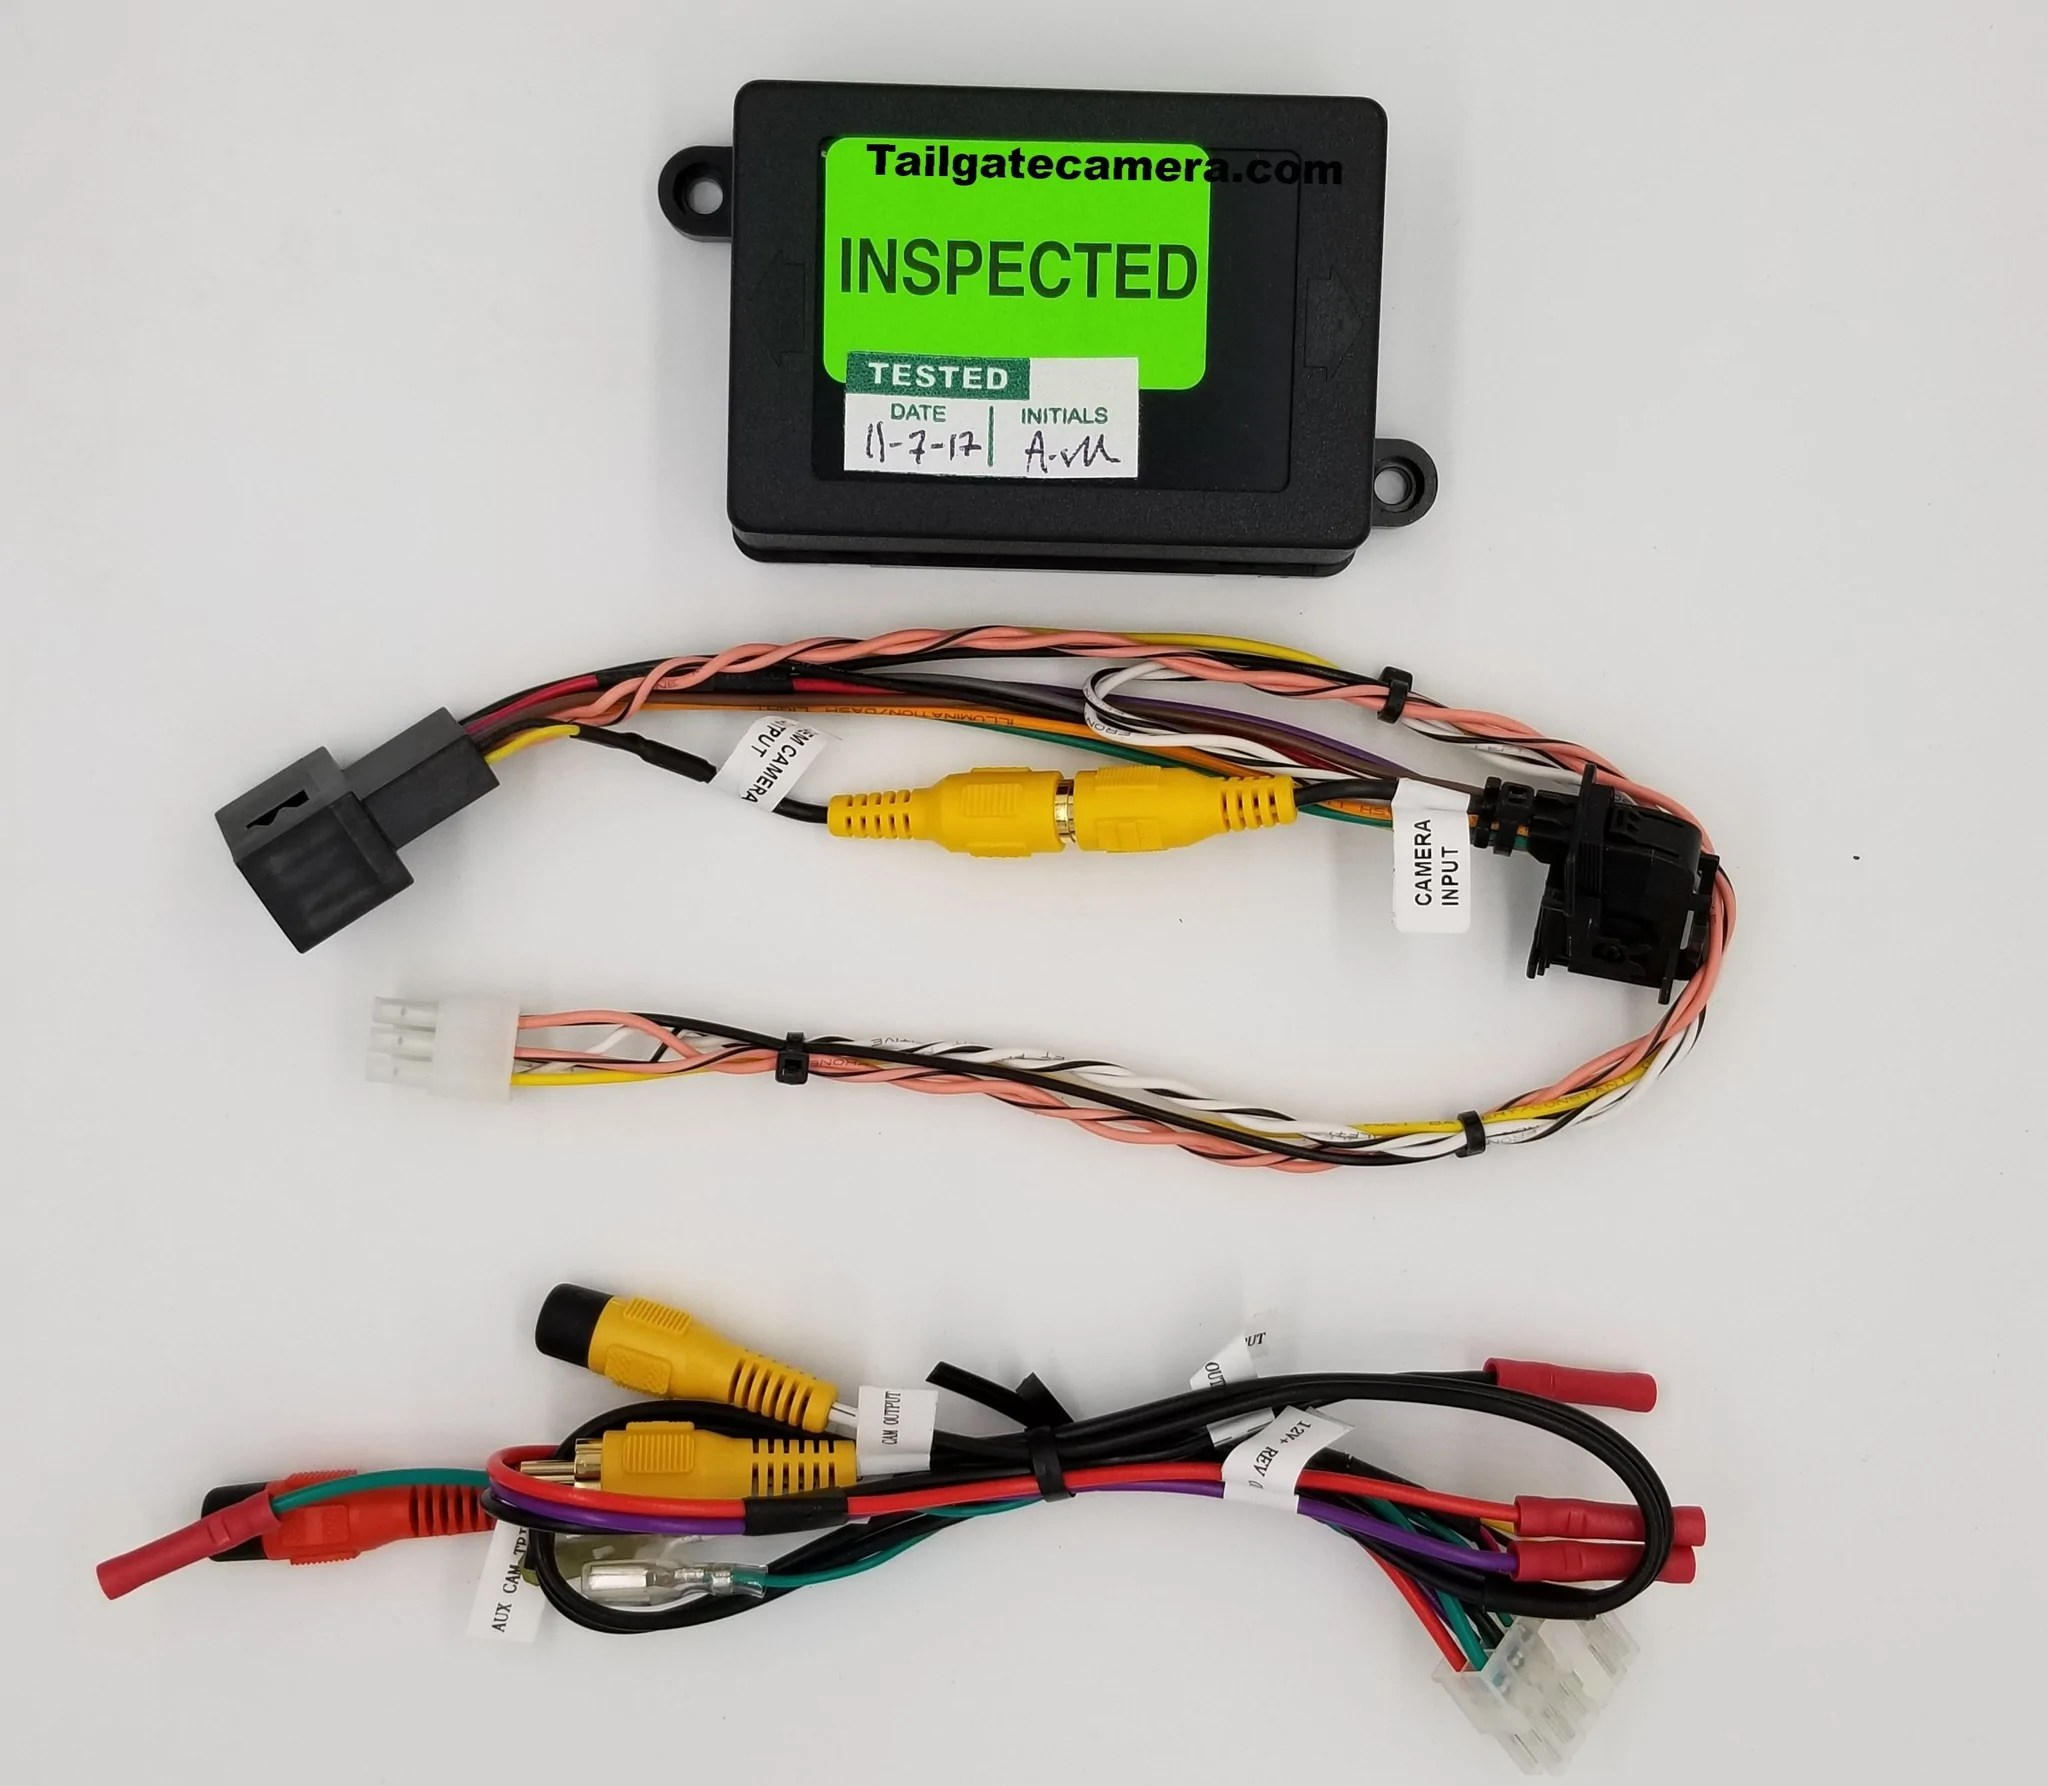 hight resolution of ford backup camera wiring harness diagram data schema ford tailgate camera wiring harness 2013 16 backup